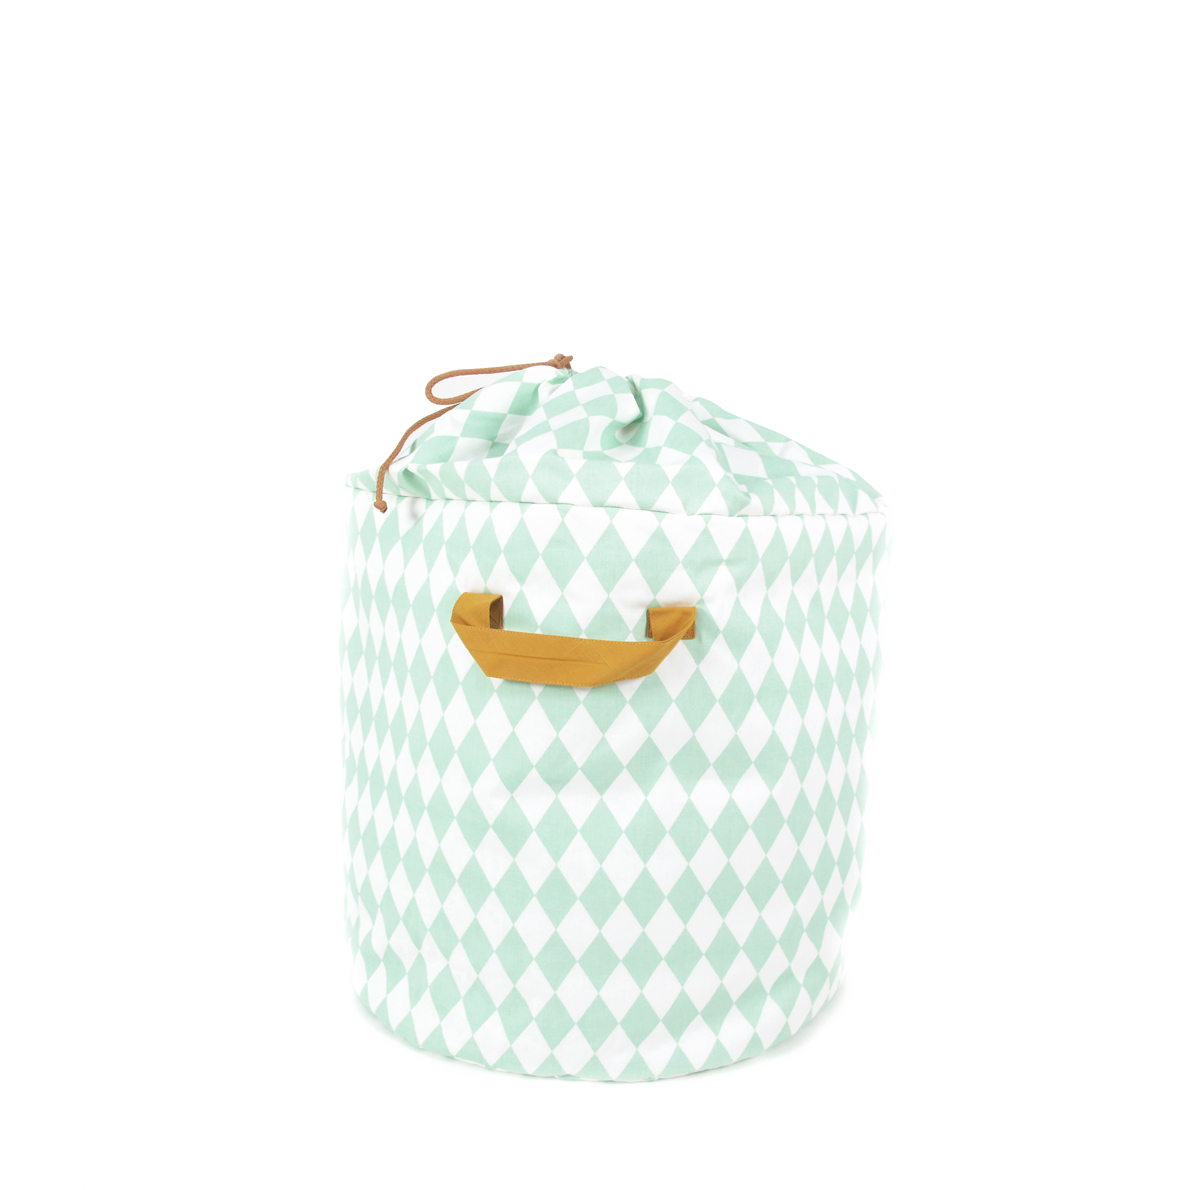 panier de rangement baobab s losanges mint nobodinoz pour chambre enfant les enfants du design. Black Bedroom Furniture Sets. Home Design Ideas